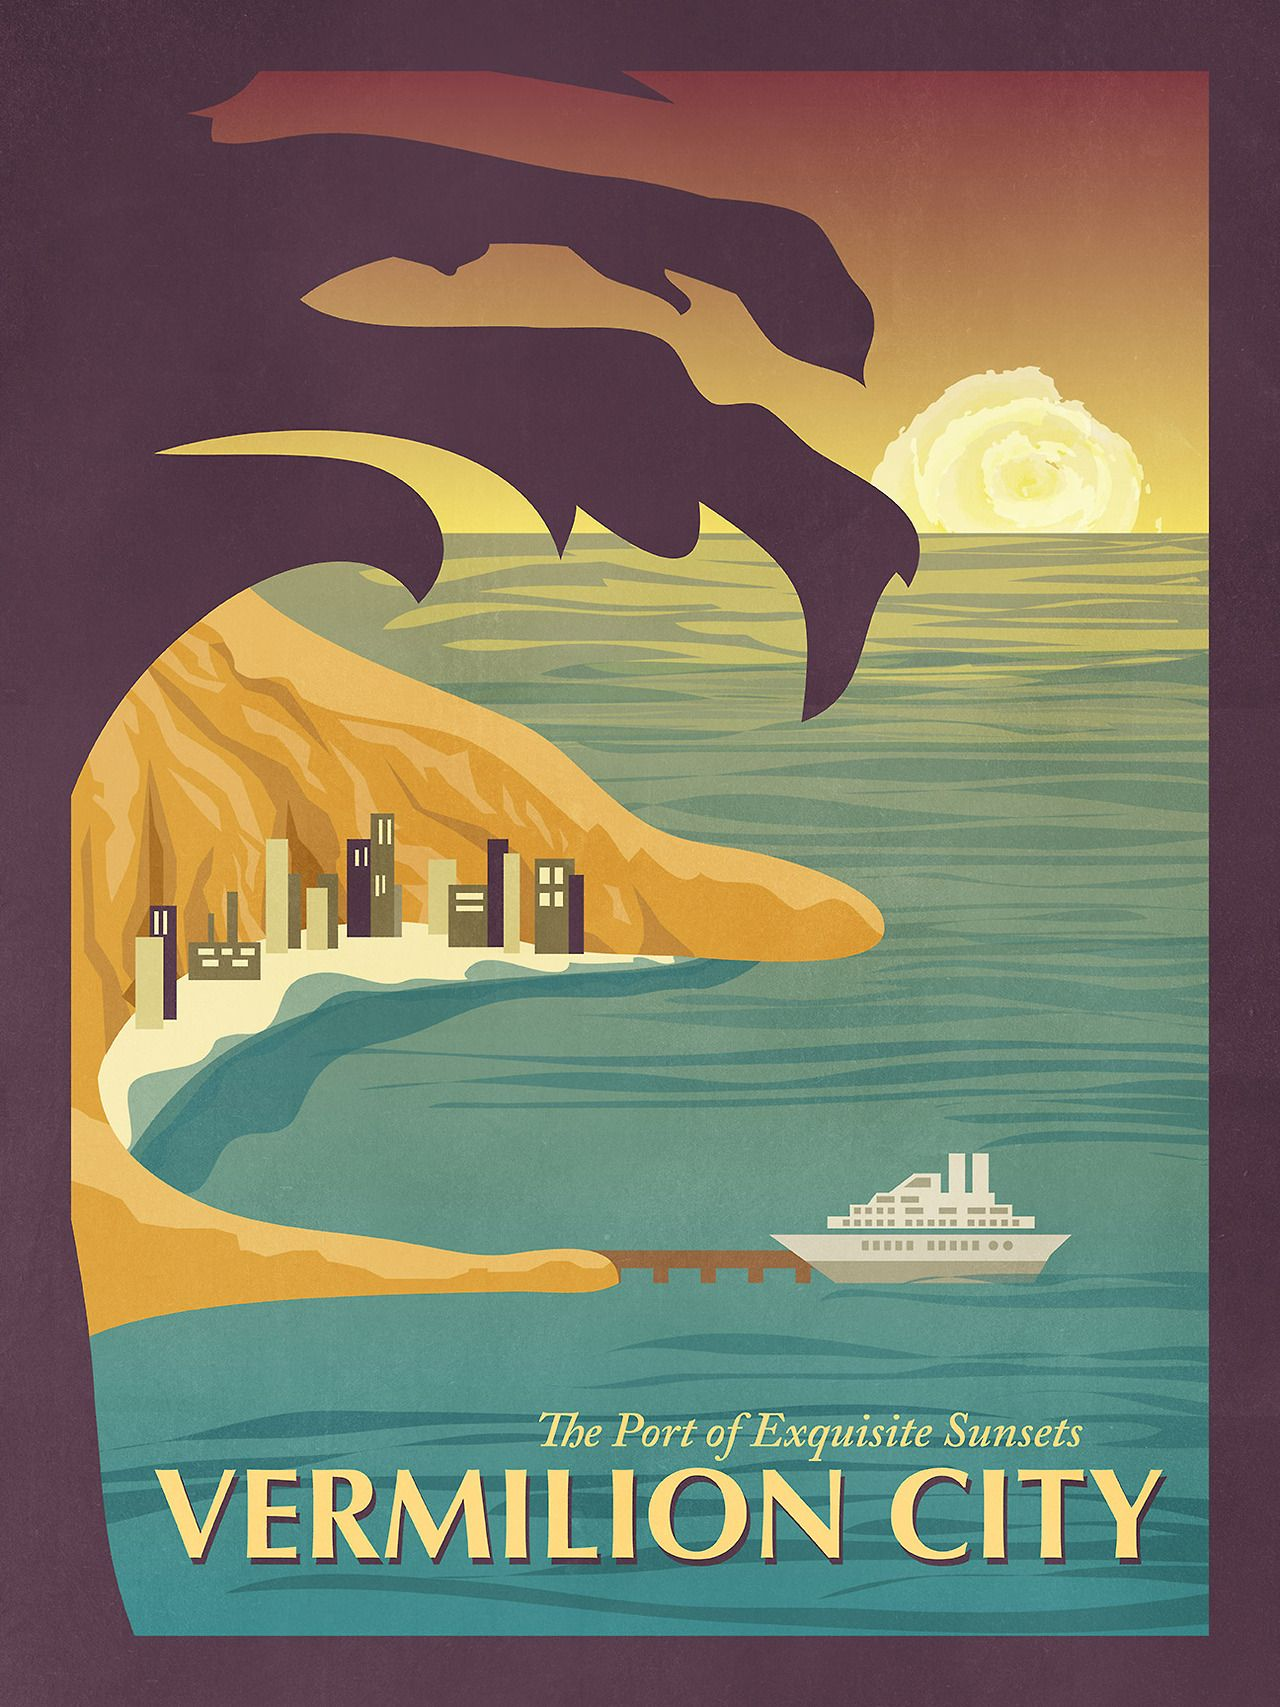 insanelygaming:  #Pokemon Travel Posters  Created by Alice Mongkongllite